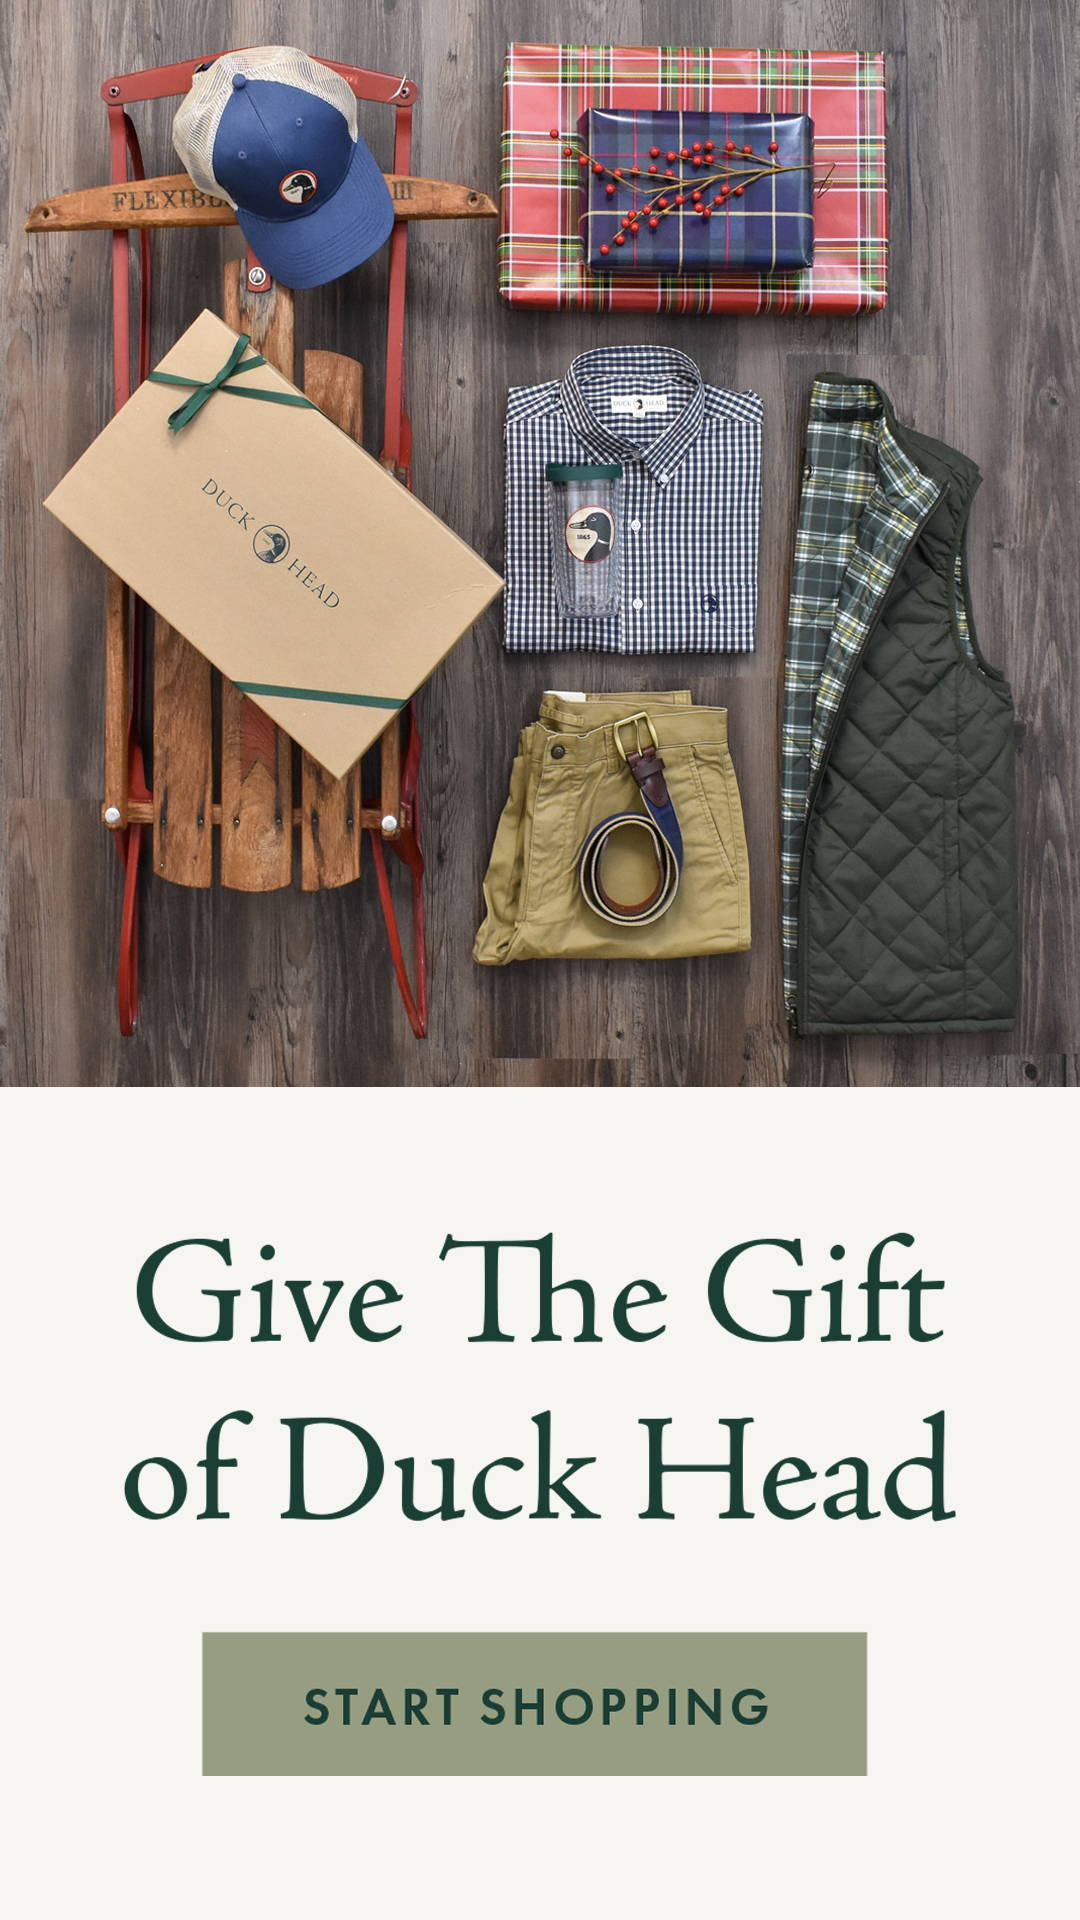 Give the Gift of Duck Head